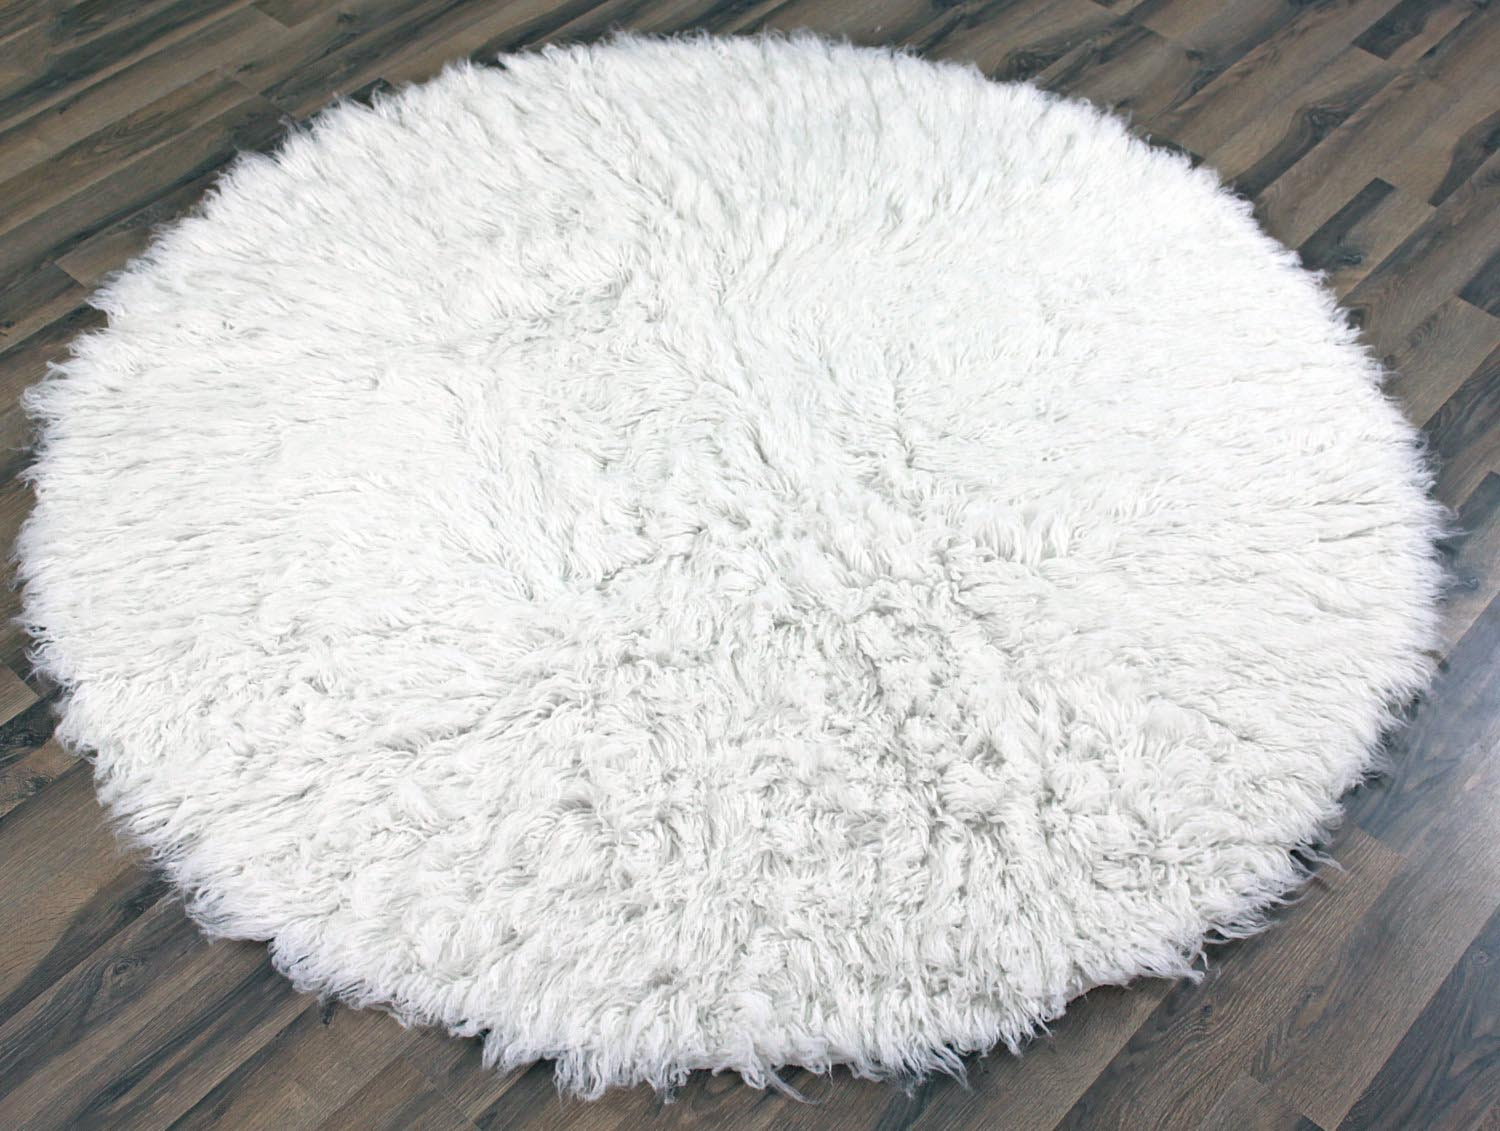 Ikea Faux Sheepskin Rug Big White Fluffy Rug - Rugs Ideas